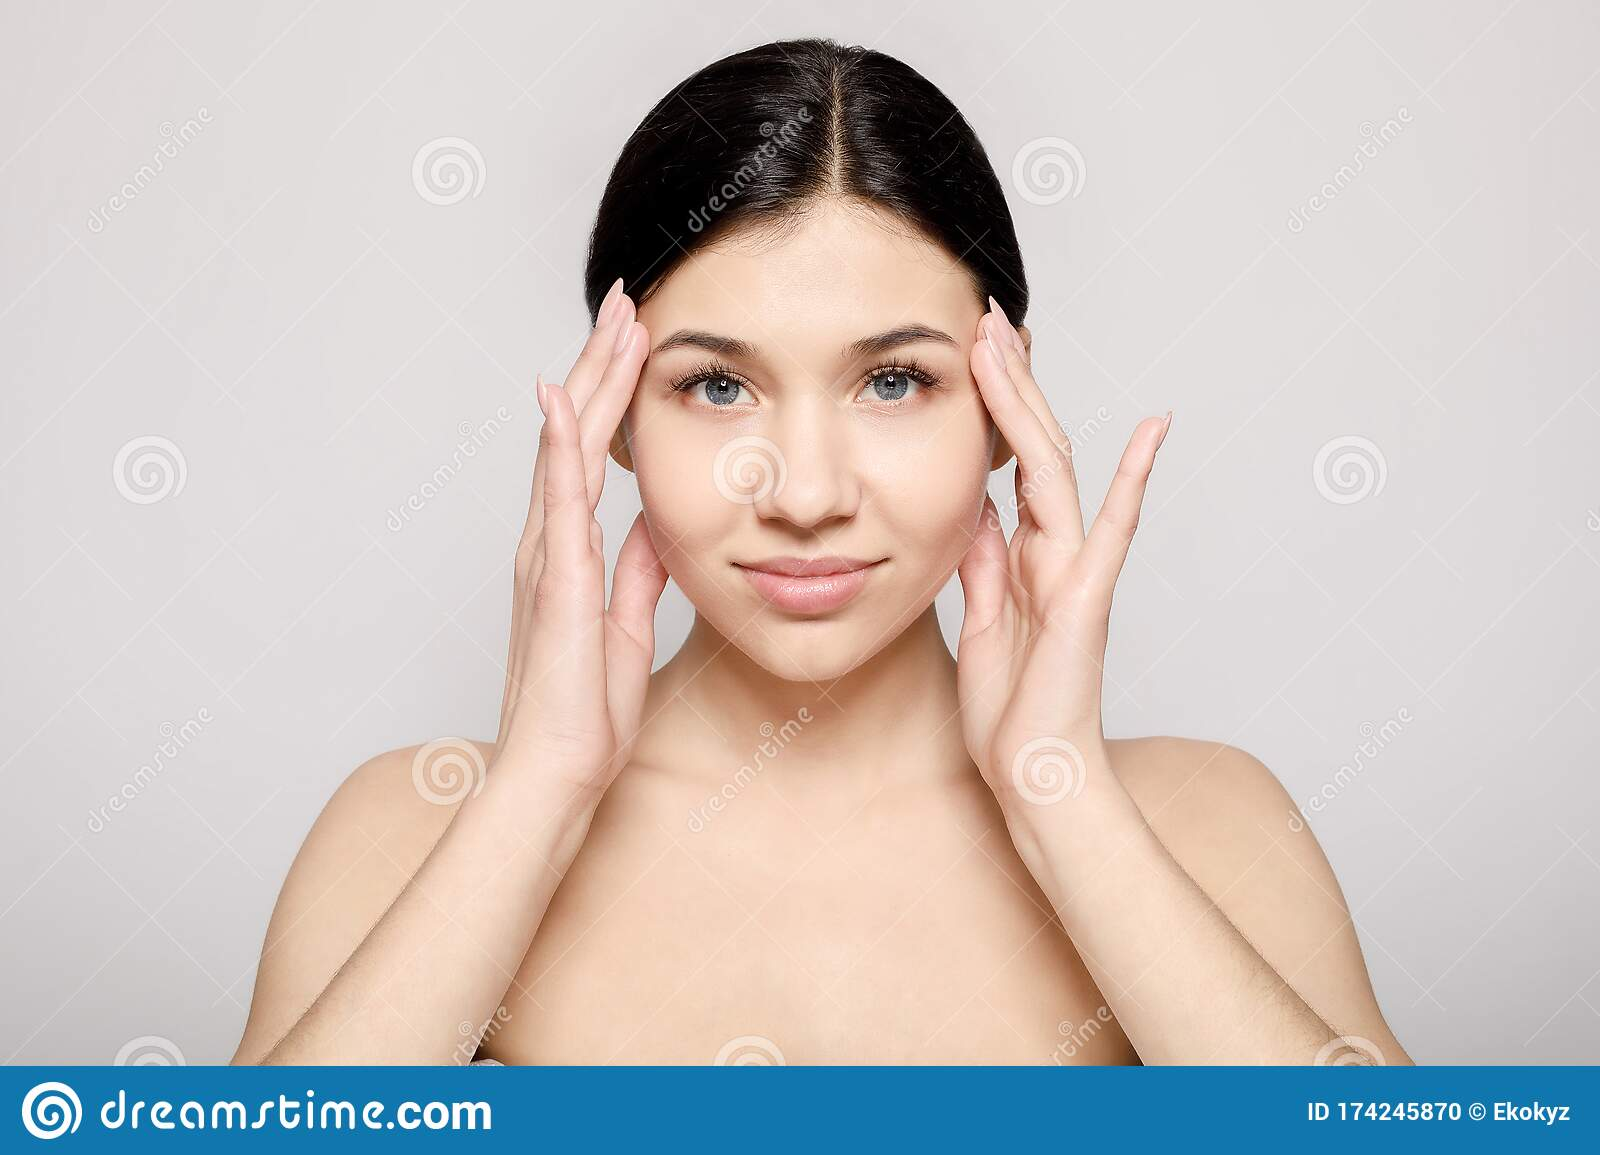 Portrait Of Woman With Naked Shoulders Stock Photo - Image